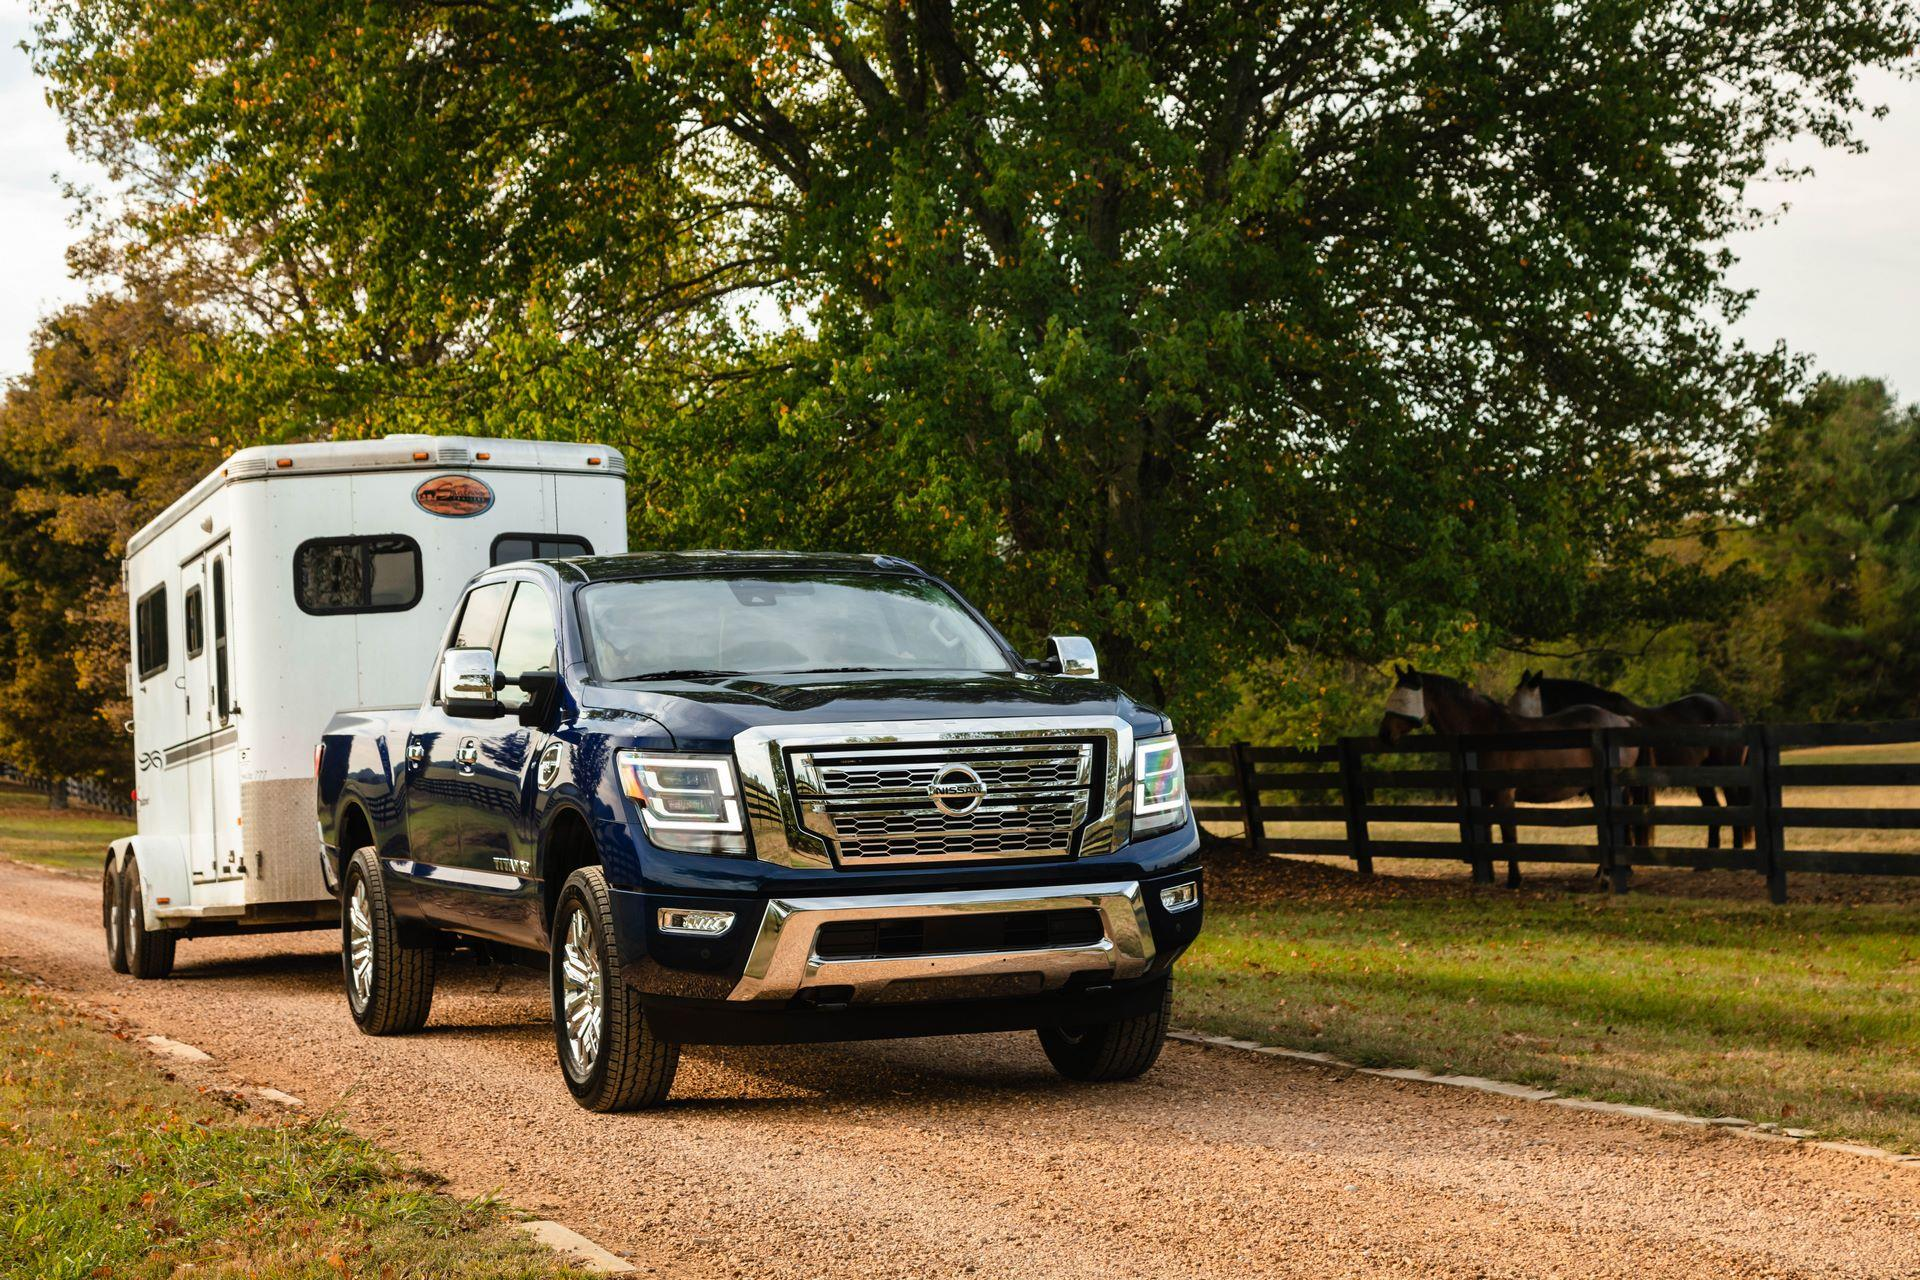 The new 2020 TITAN XD offers confident towing and hauling usually provided by larger, more-expensive heavy-duty trucks, while still providing the comfort and nimbleness of a light-duty pickup. Among the list of TITAN XD's available towing aids are an Integrated Trailer Brake Controller, Trailer Sway Control (TSC), Tow/Haul Mode with Downhill Speed Control and a Trailer Light Check system that allows one-person hook-up operation.